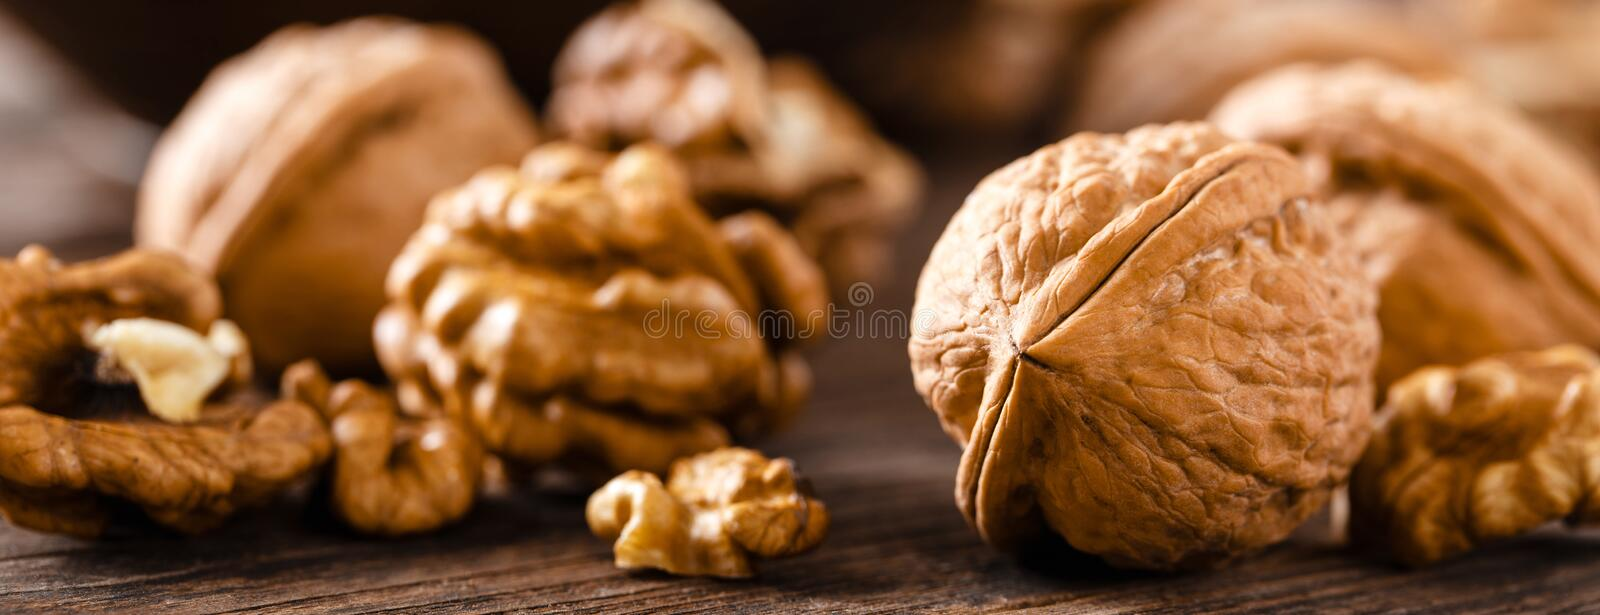 Walnuts. Kernels and whole nuts on wooden rustic table closeup, banner. Walnuts. Kernels and whole nuts on wooden rustic table, banner stock photography